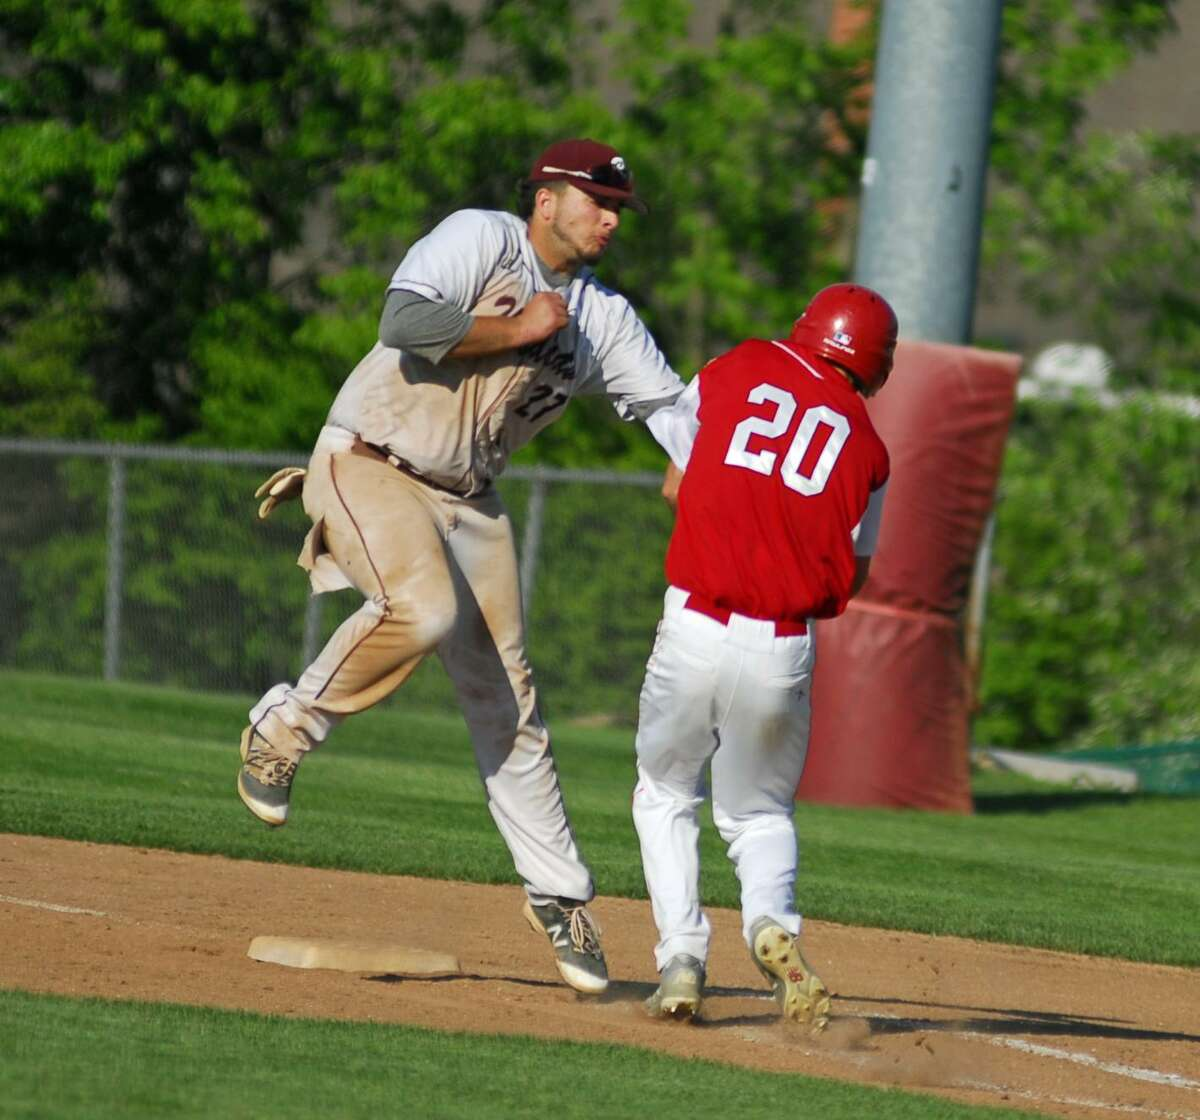 Bethel's Jaxon Millet, left, tags a Masuk runner during their SWC semifinal game on Thursday.